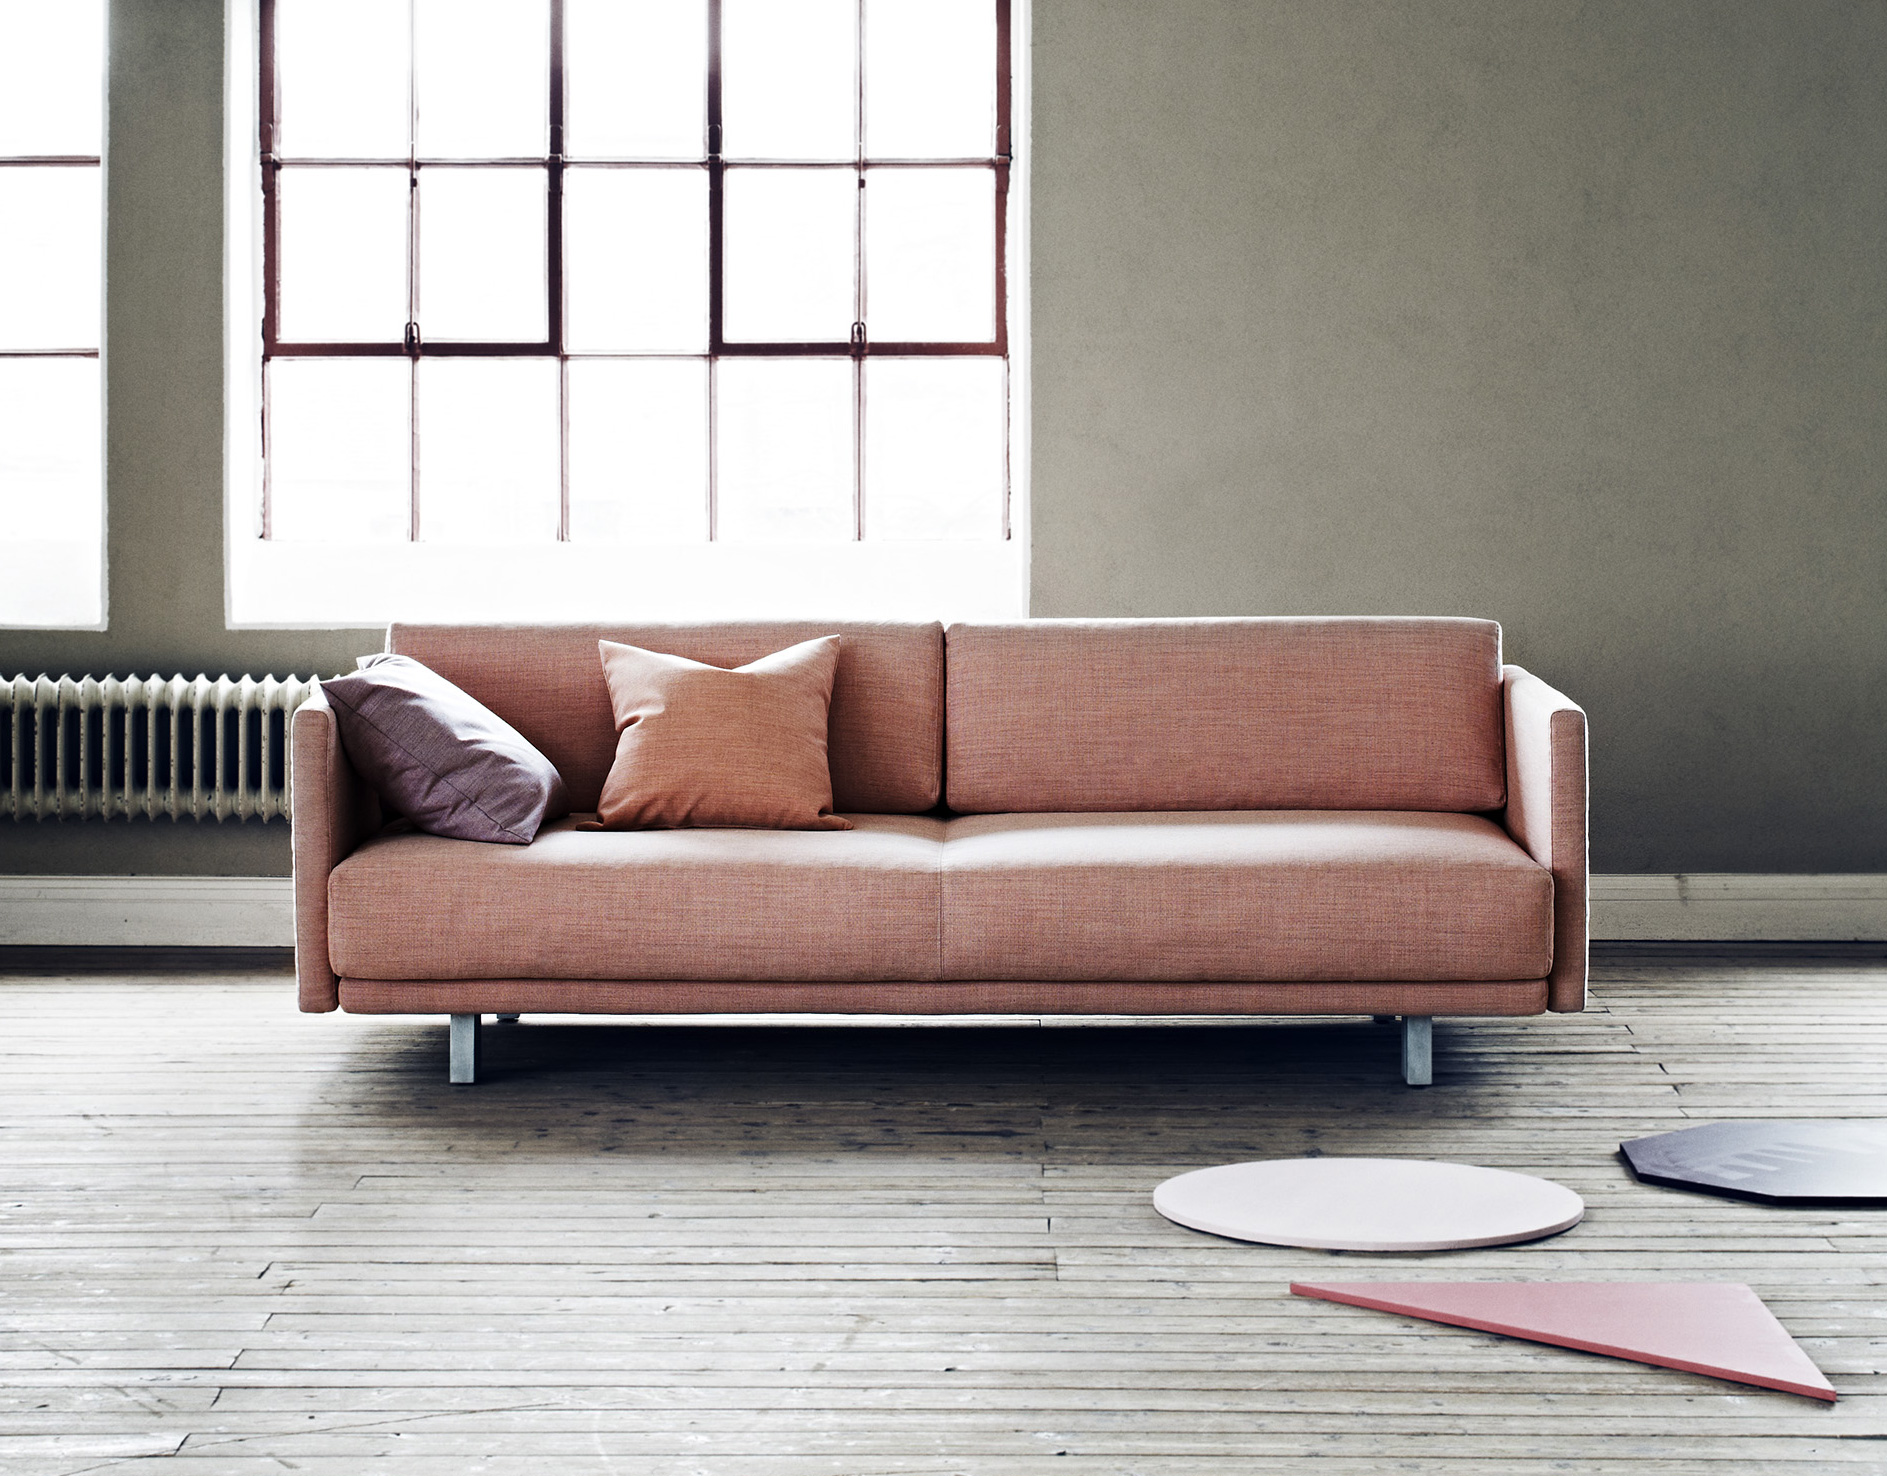 Softline Meghan Sofa Bed in blush pink